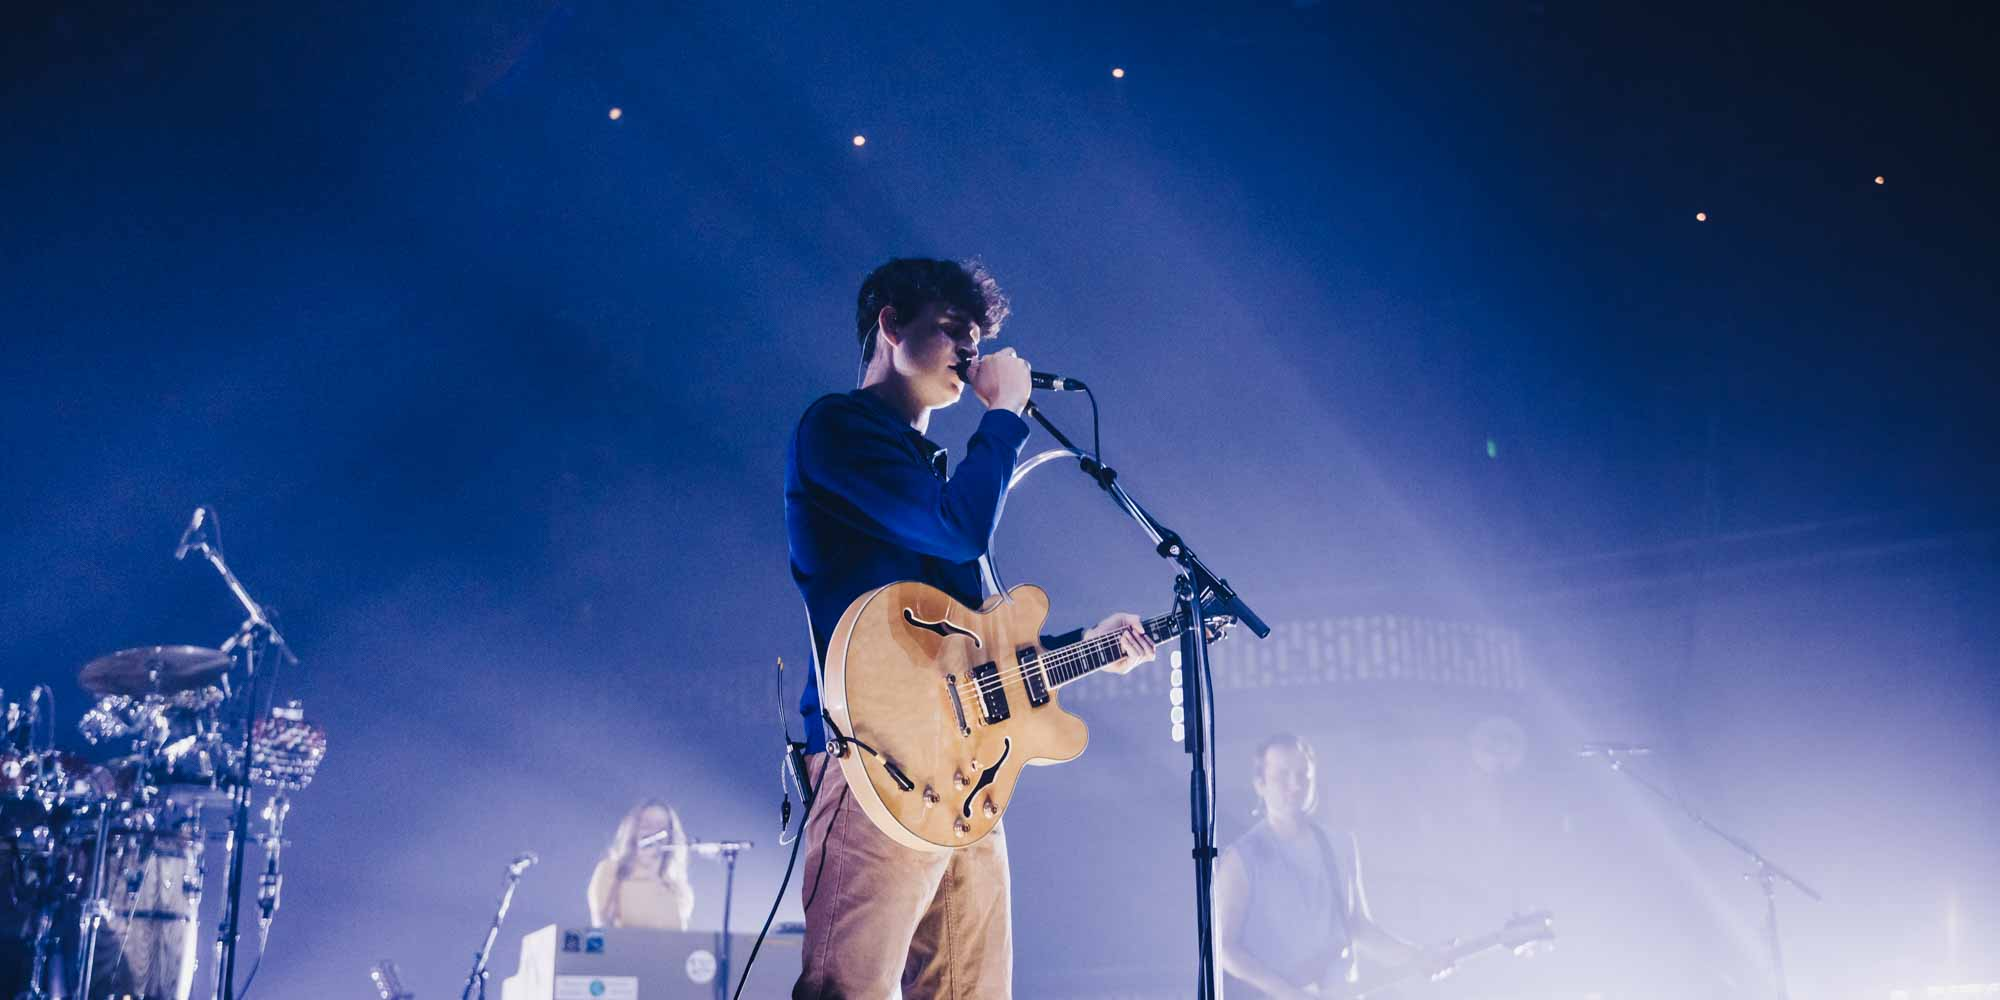 Ezra Koenig of Vampire Weekend performing at the Armory in Minneapolis. Photography by Joshua Garcia.